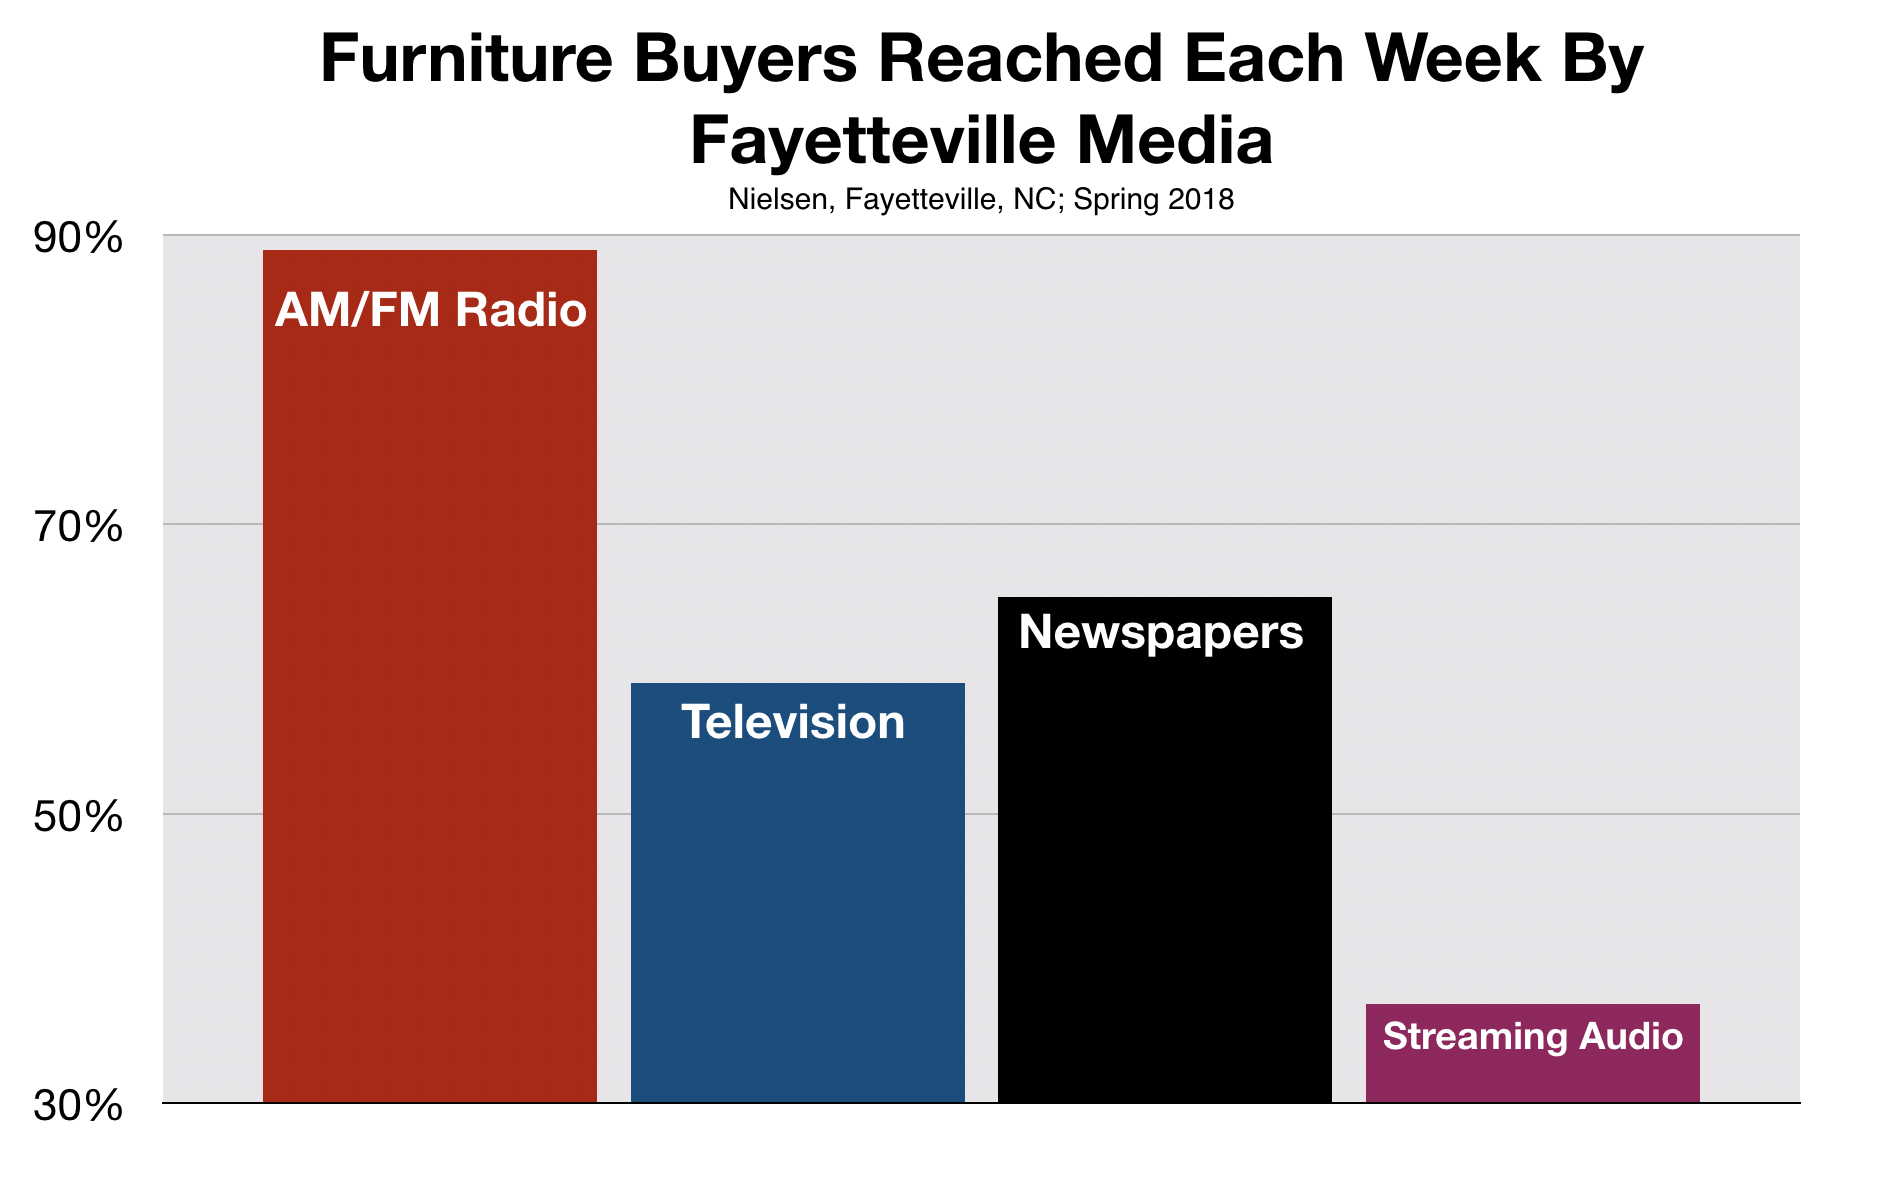 Furniture Buyers Reached By Advertising On Fayetteville radio.